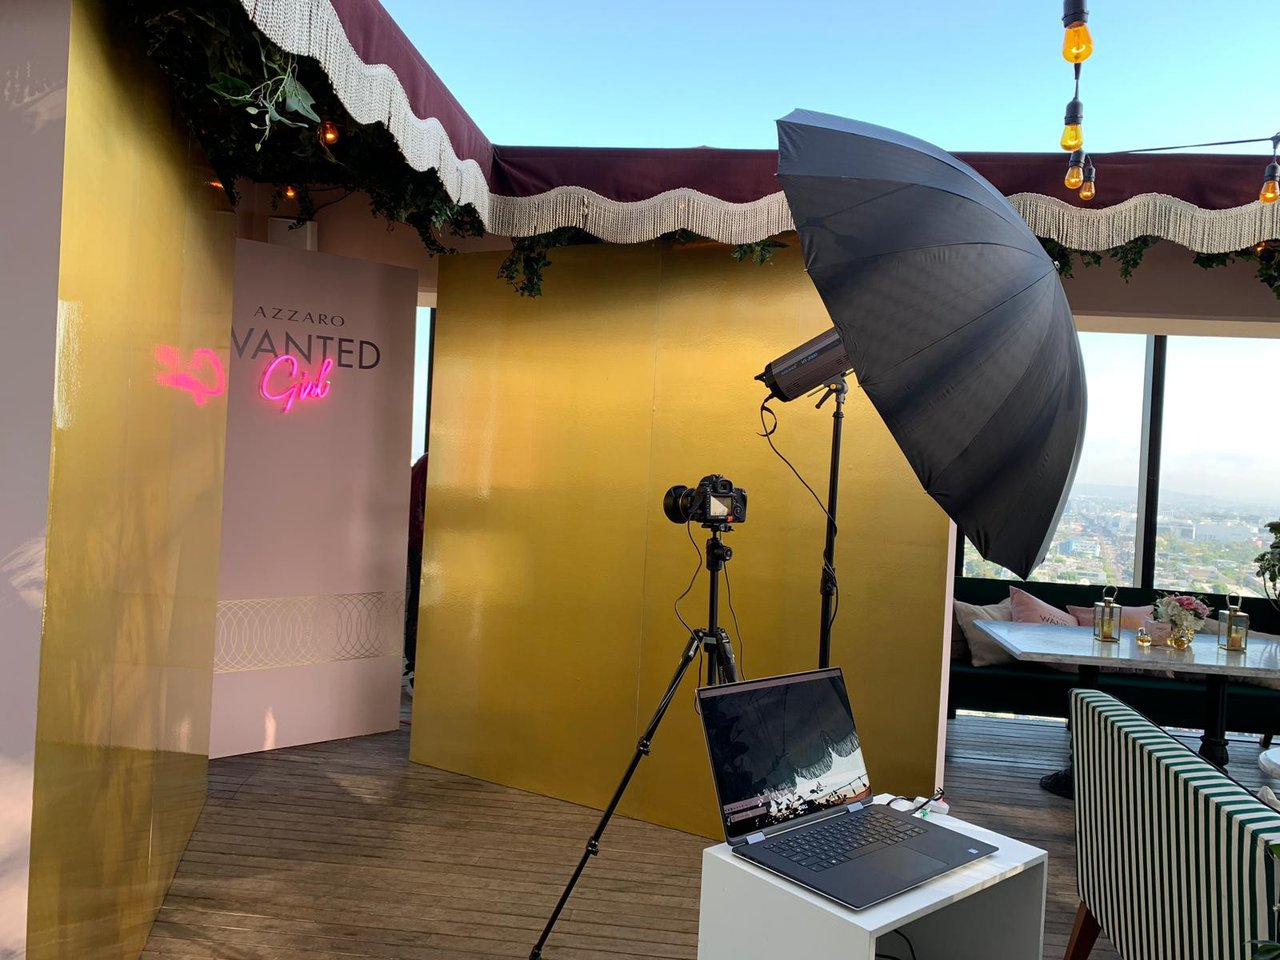 Music Video Booth: Azzaro Wanted Girl photo 831810a9-262e-4d3a-bf42-44aaf5174446.jpg